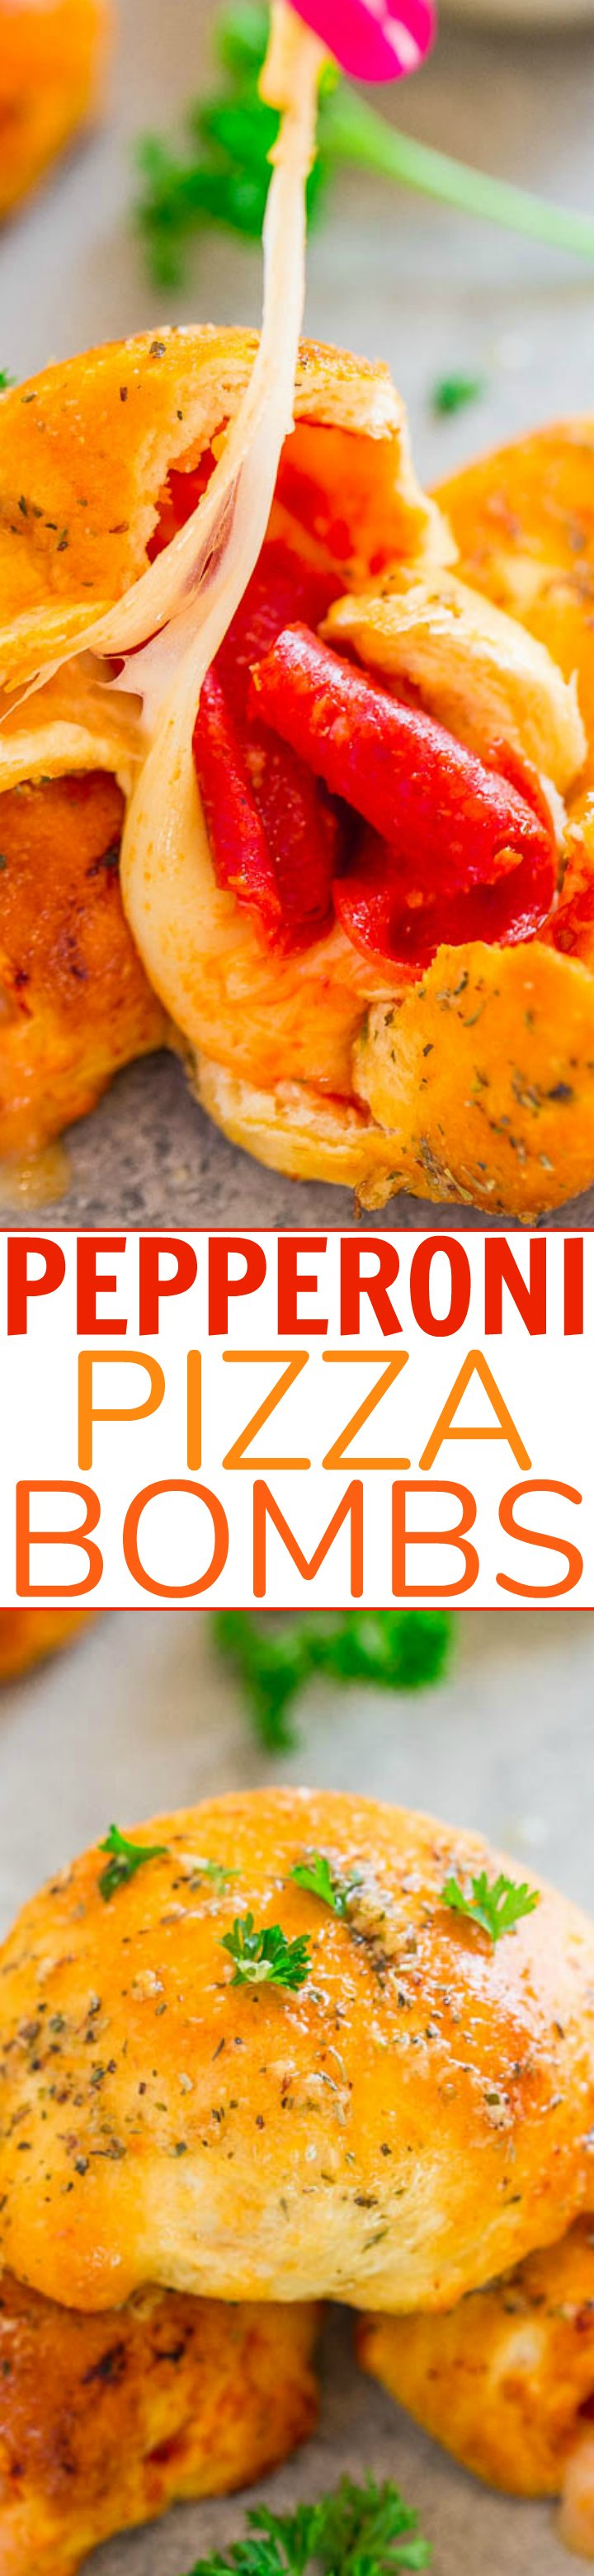 Pepperoni Pizza Bombs - Pizza by way of soft, warm rolls stuffed with pepperoni and oodles of CHEESE!! Easy, ready in 15 minutes, perfect for PARTIES, and simply IRRESISTIBLE!!